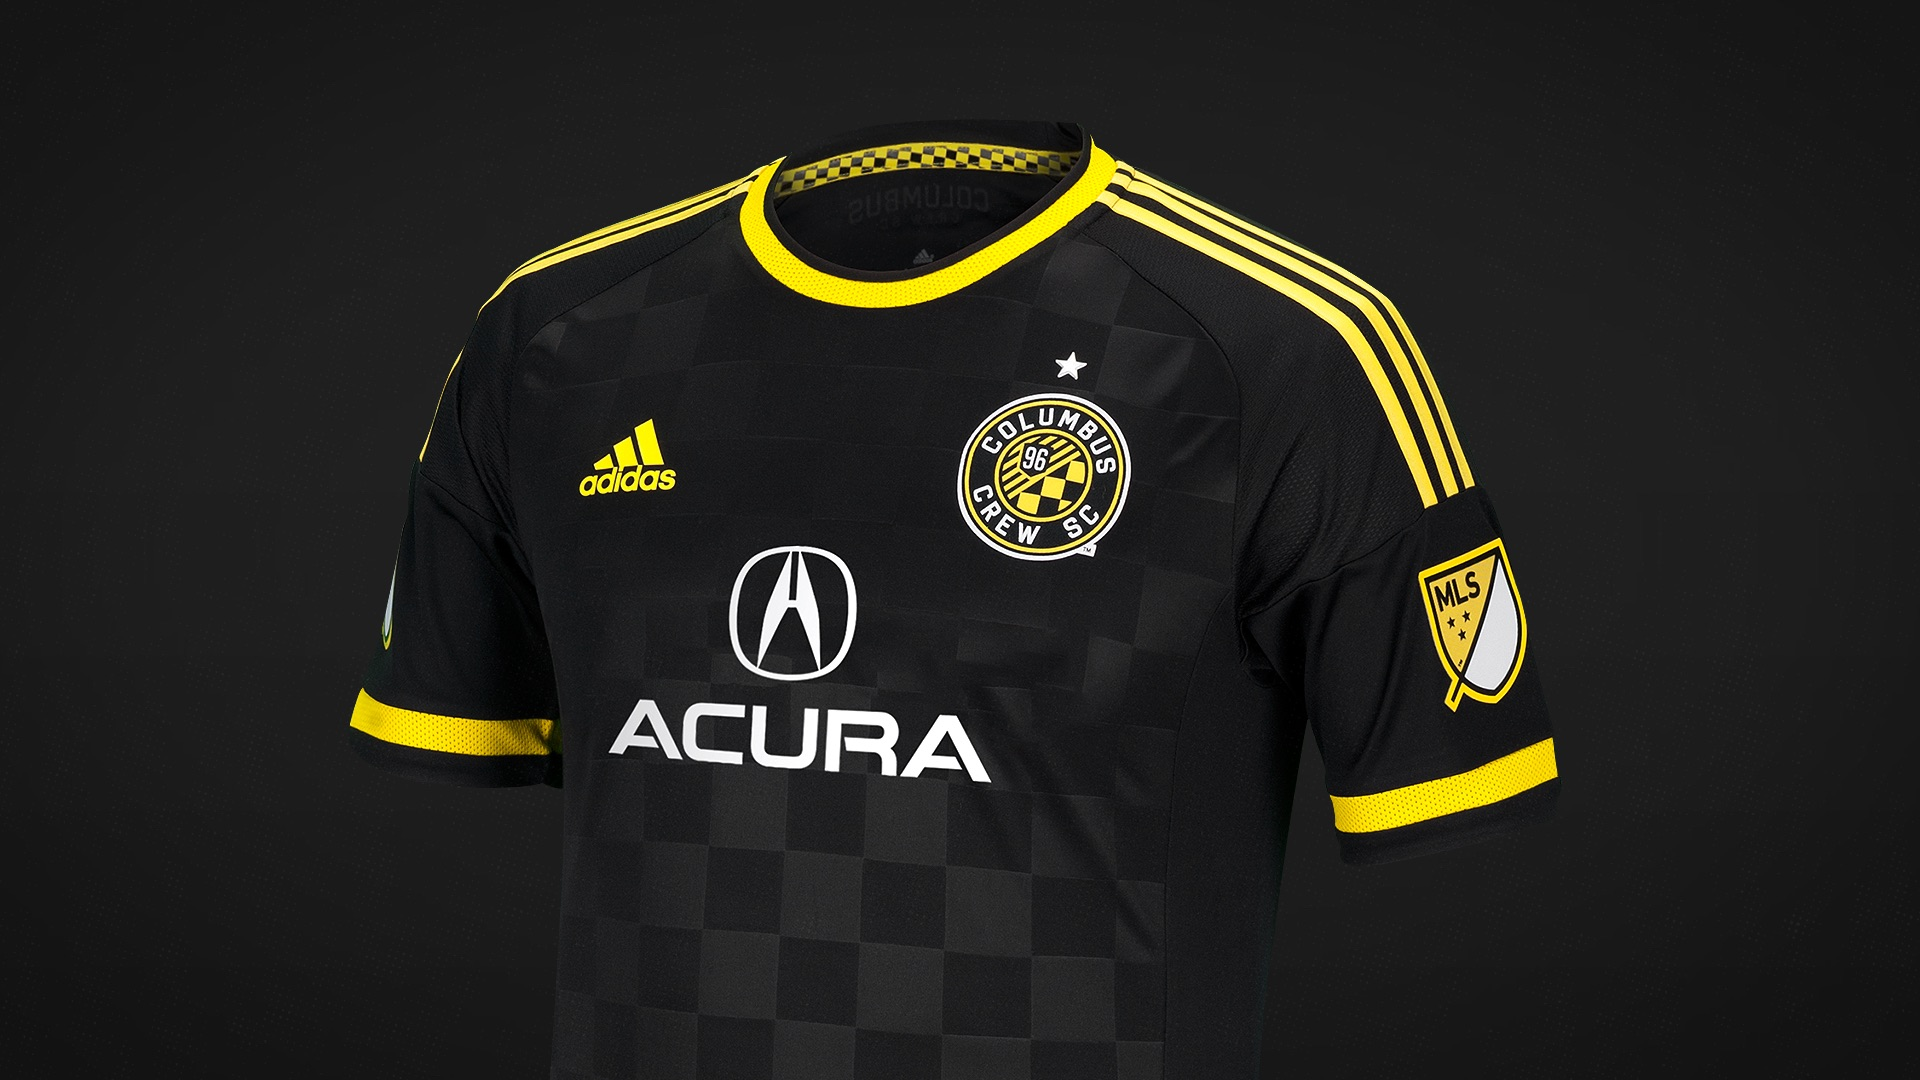 7f84eafc47d ... Crew SC unveiled a sharp black look that will contrast nicely with  their all-gold home kits. They moved away from the gold stripes and  checkered pattern ...